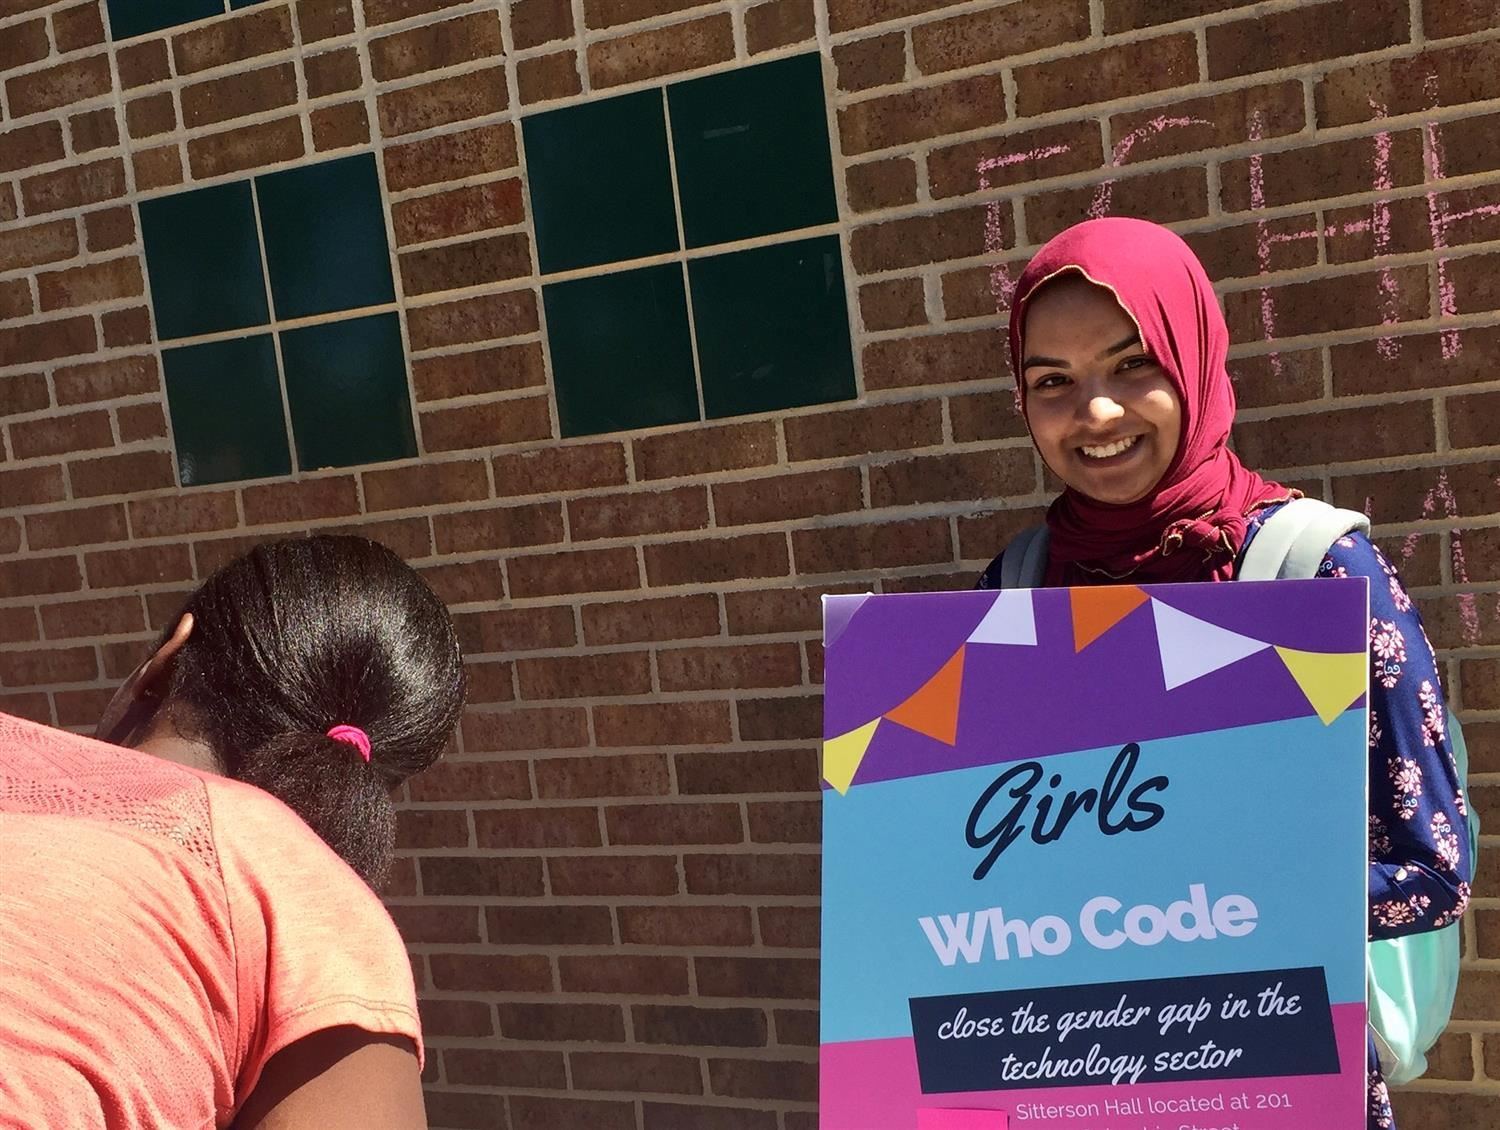 Abia Ahmed and Girls Who Code